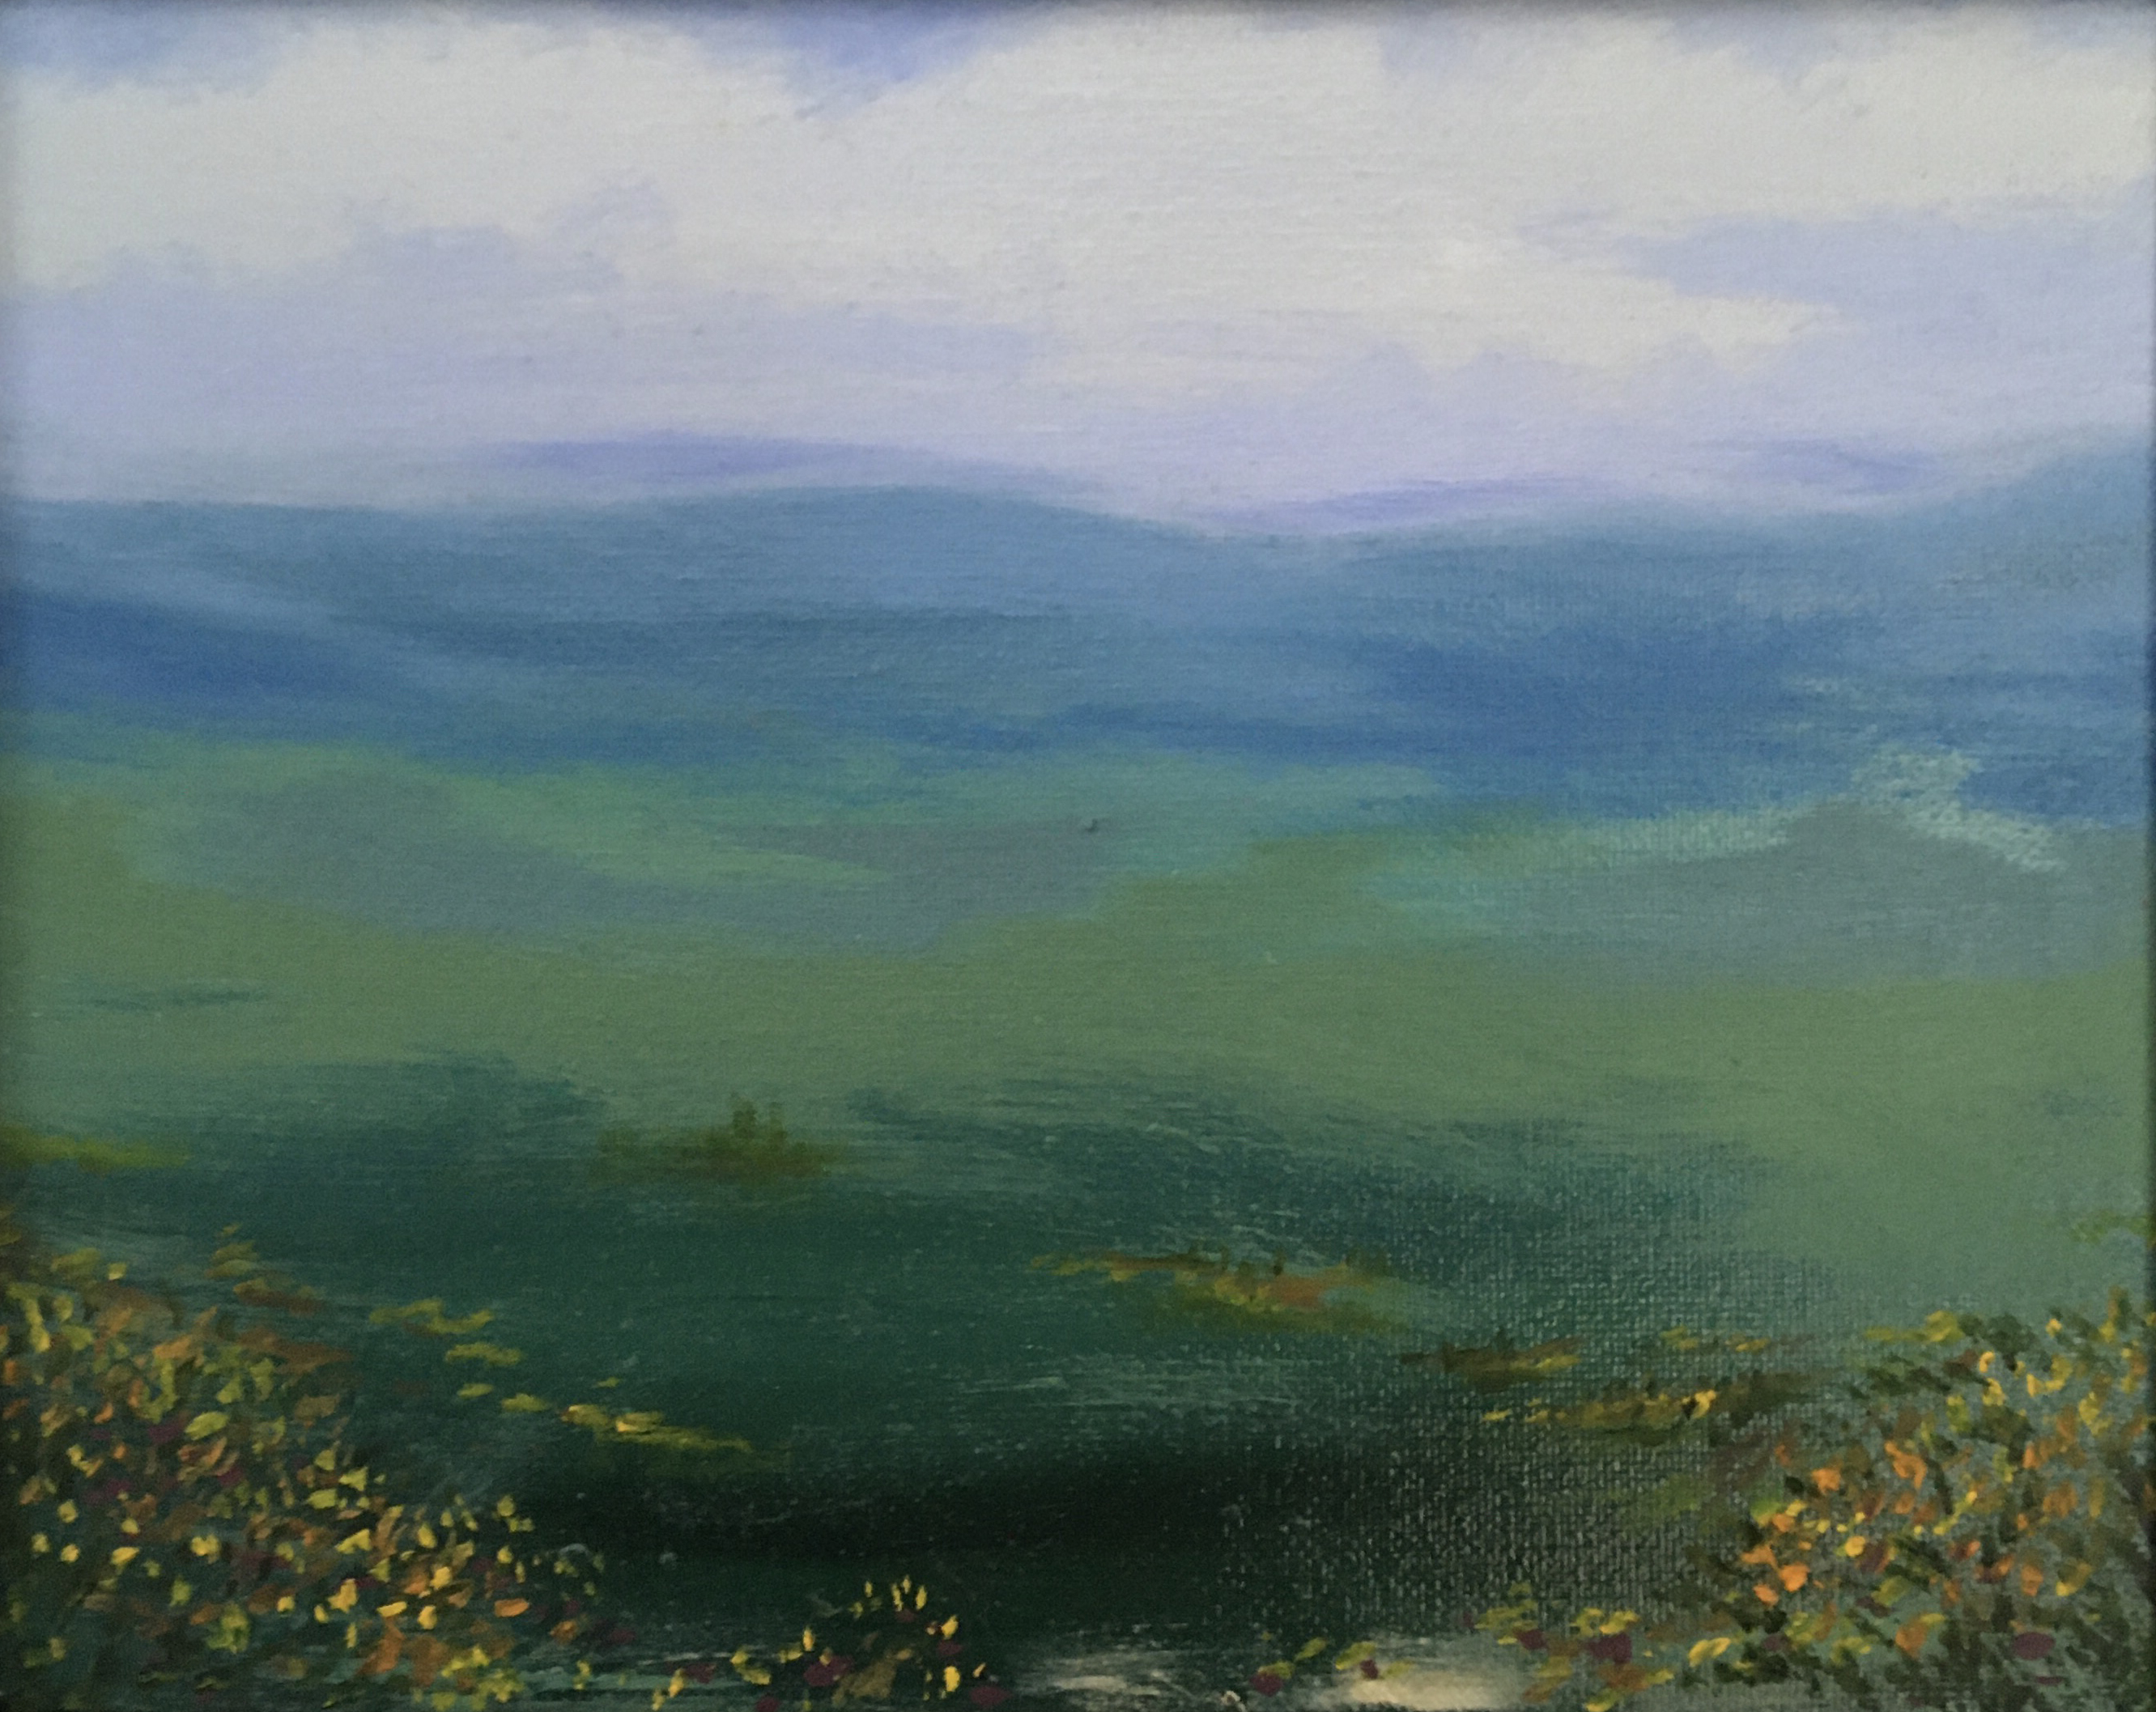 Patricia Aspinall, 'The Gorse land' Oil on canvas. Framed Size: 28cm x 33cm. £65